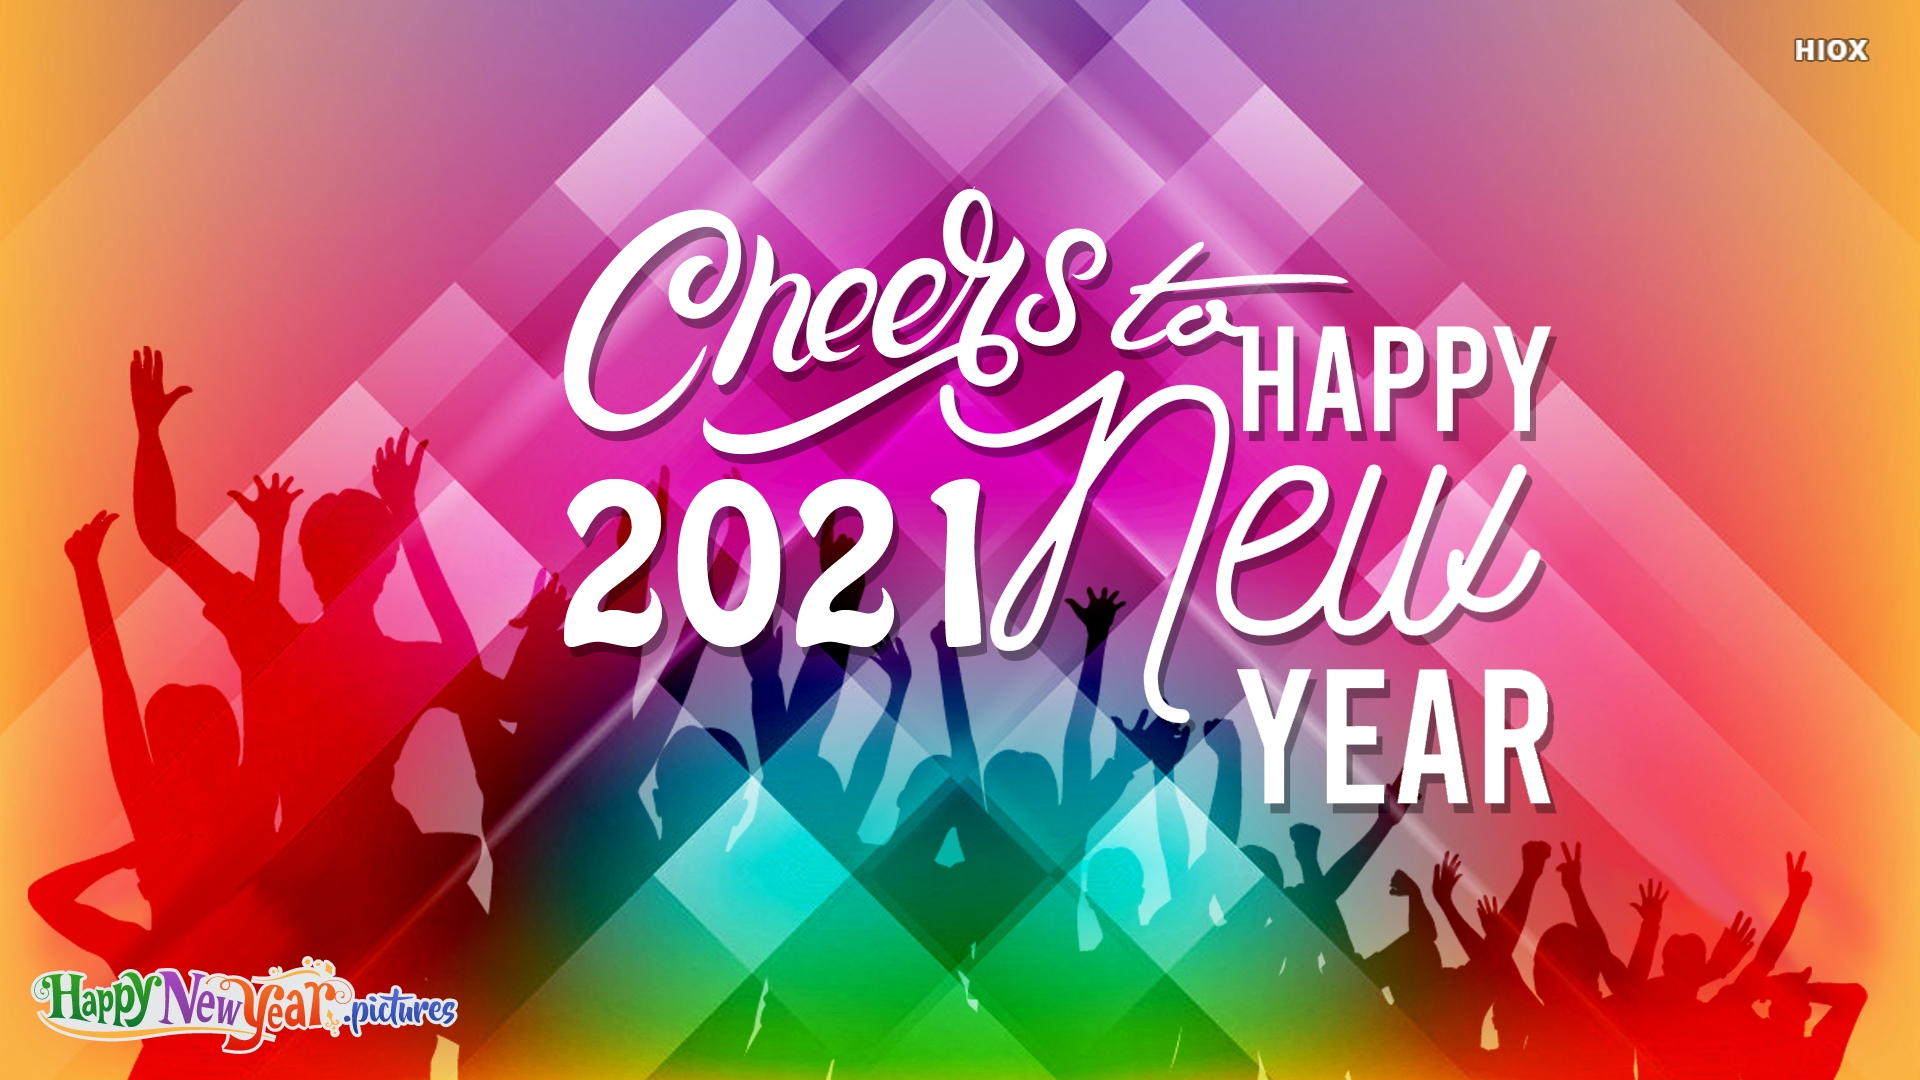 Cheers To 2021! Happy New Year!